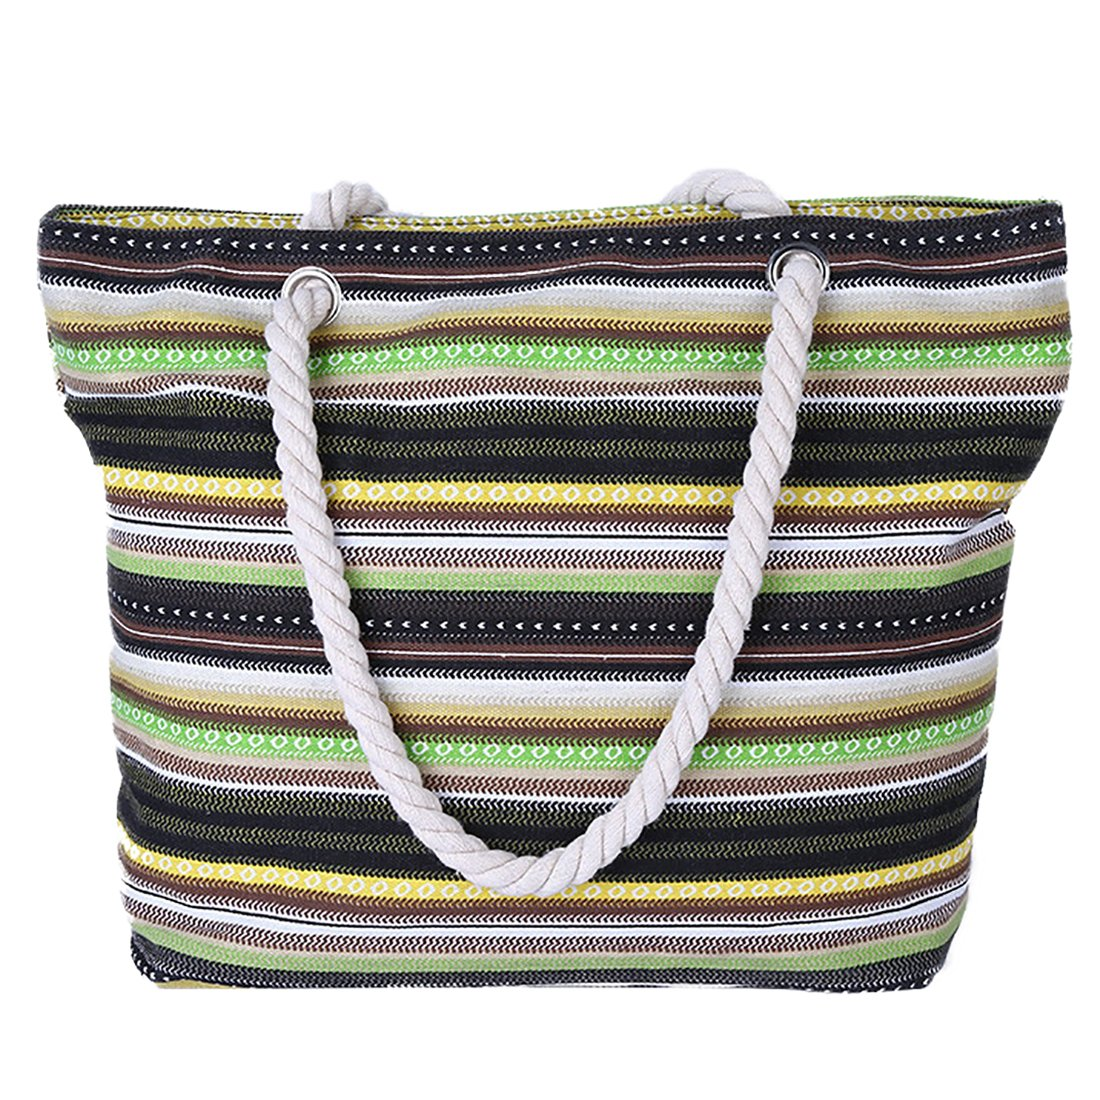 Large Bohemian for Women Canvas Beach Bag Striped Travel Hobo Tote Bag With Waterproof Lining (Striped 2)